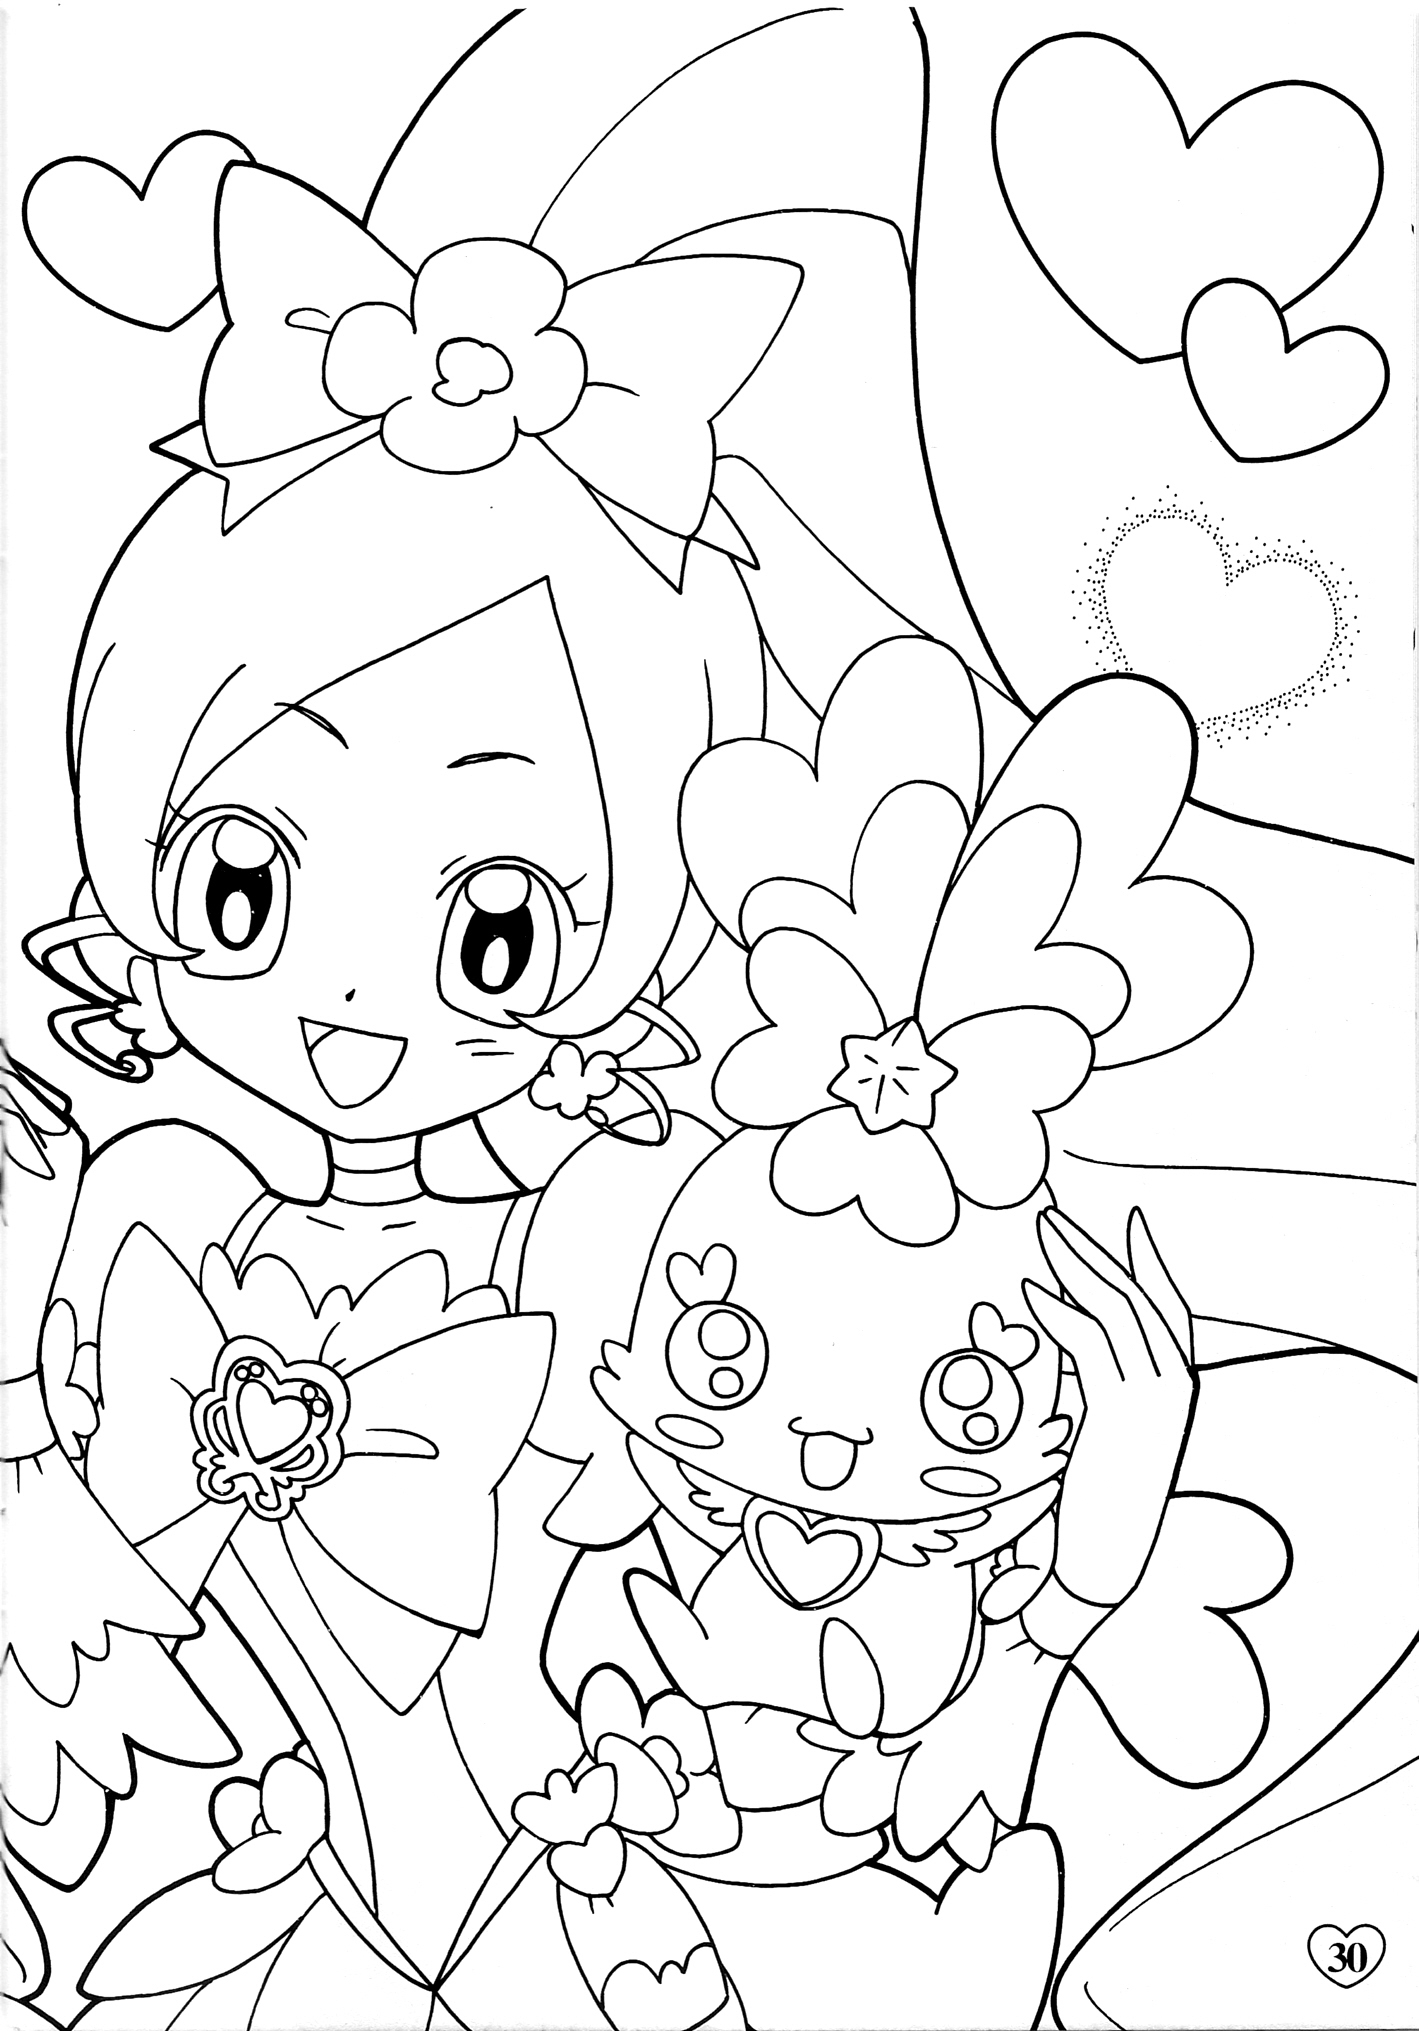 smile precure coloring pages - fresh pretty cure coloring pages sketch coloring page